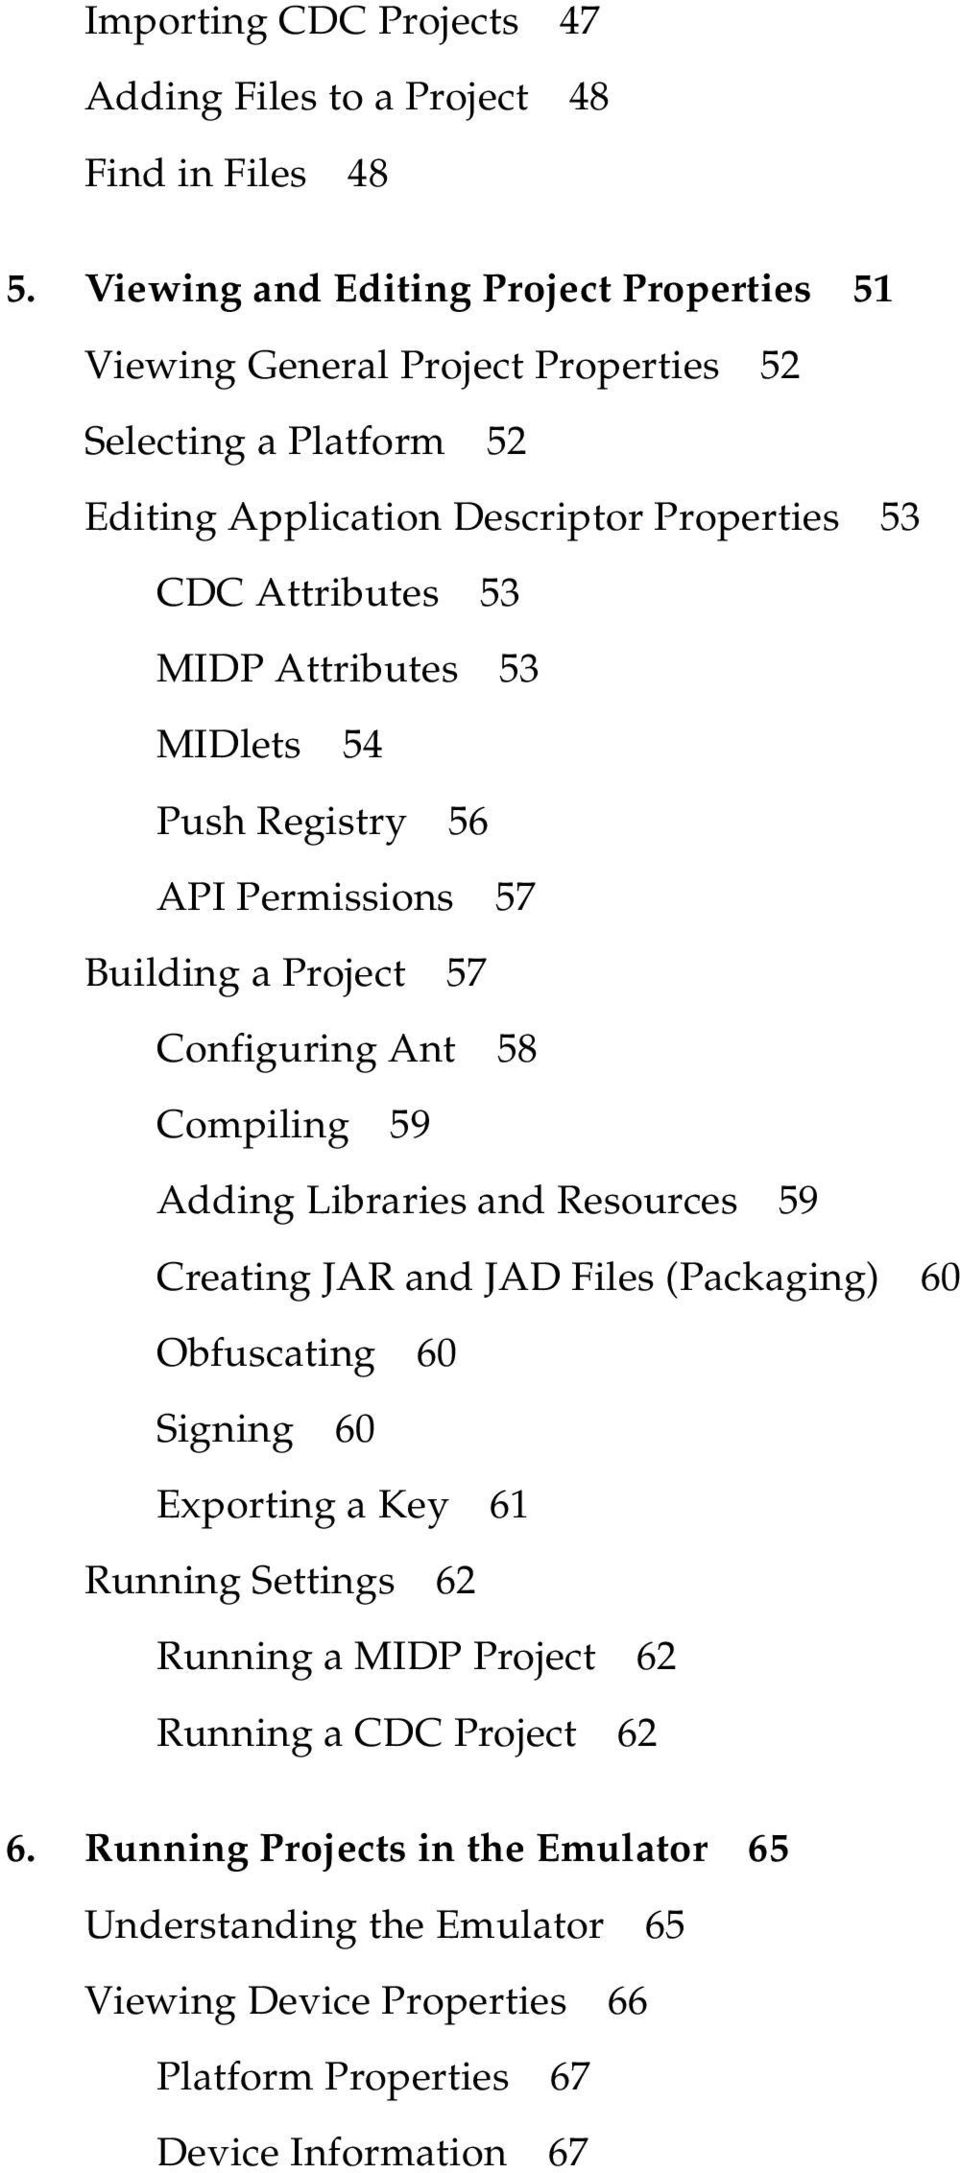 Attributes 53 MIDlets 54 Push Registry 56 API Permissions 57 Building a Project 57 Configuring Ant 58 Compiling 59 Adding Libraries and Resources 59 Creating JAR and JAD